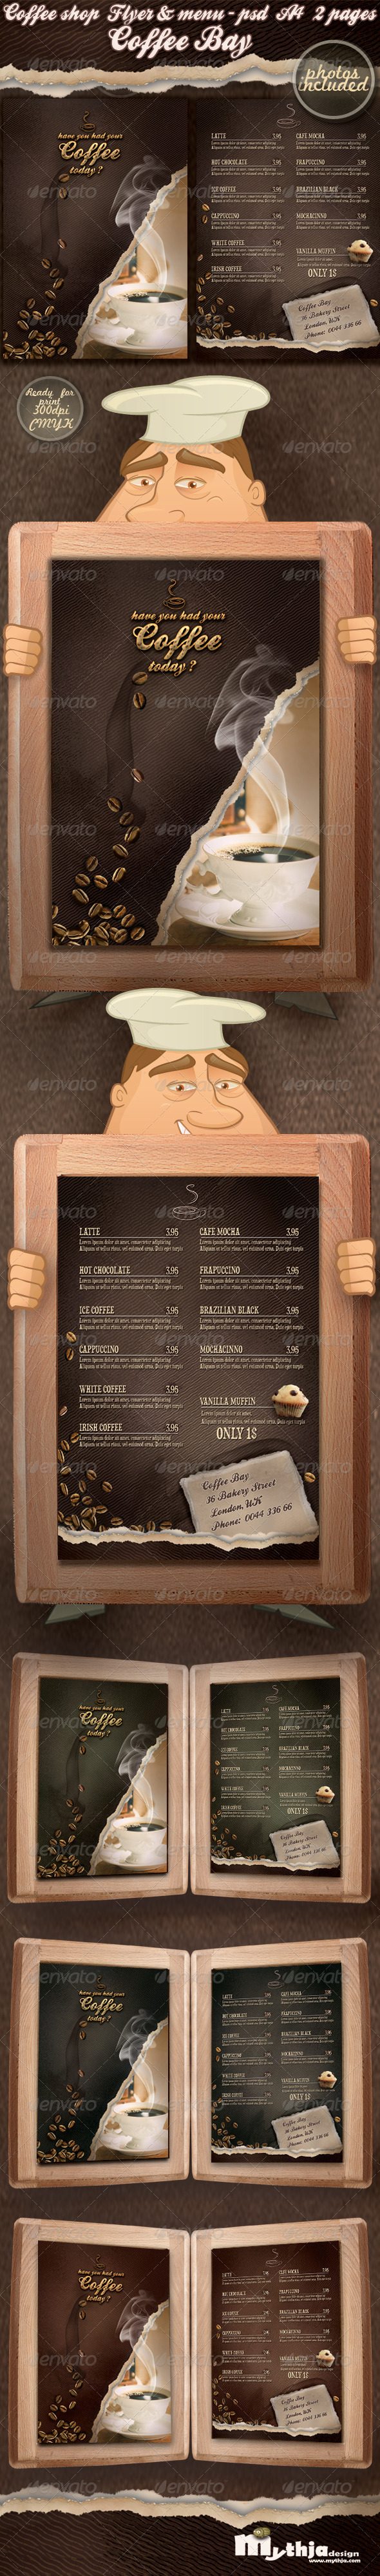 60 premium restaurant menu templates dzineflip for Tapas menu template